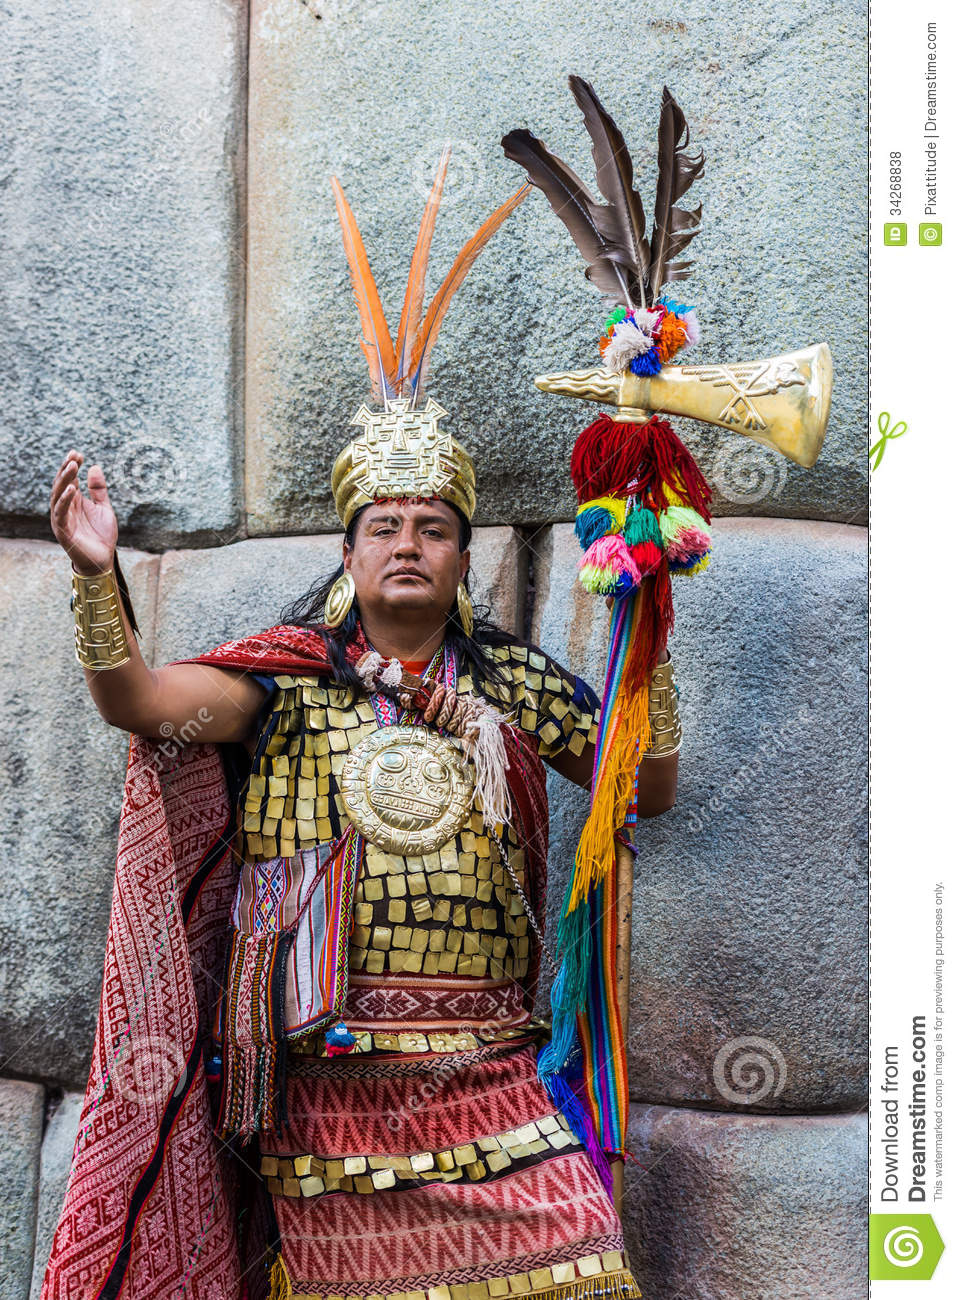 Cuzco, Peru - July 13, 2013: man disguised as Inca warrior in the ...